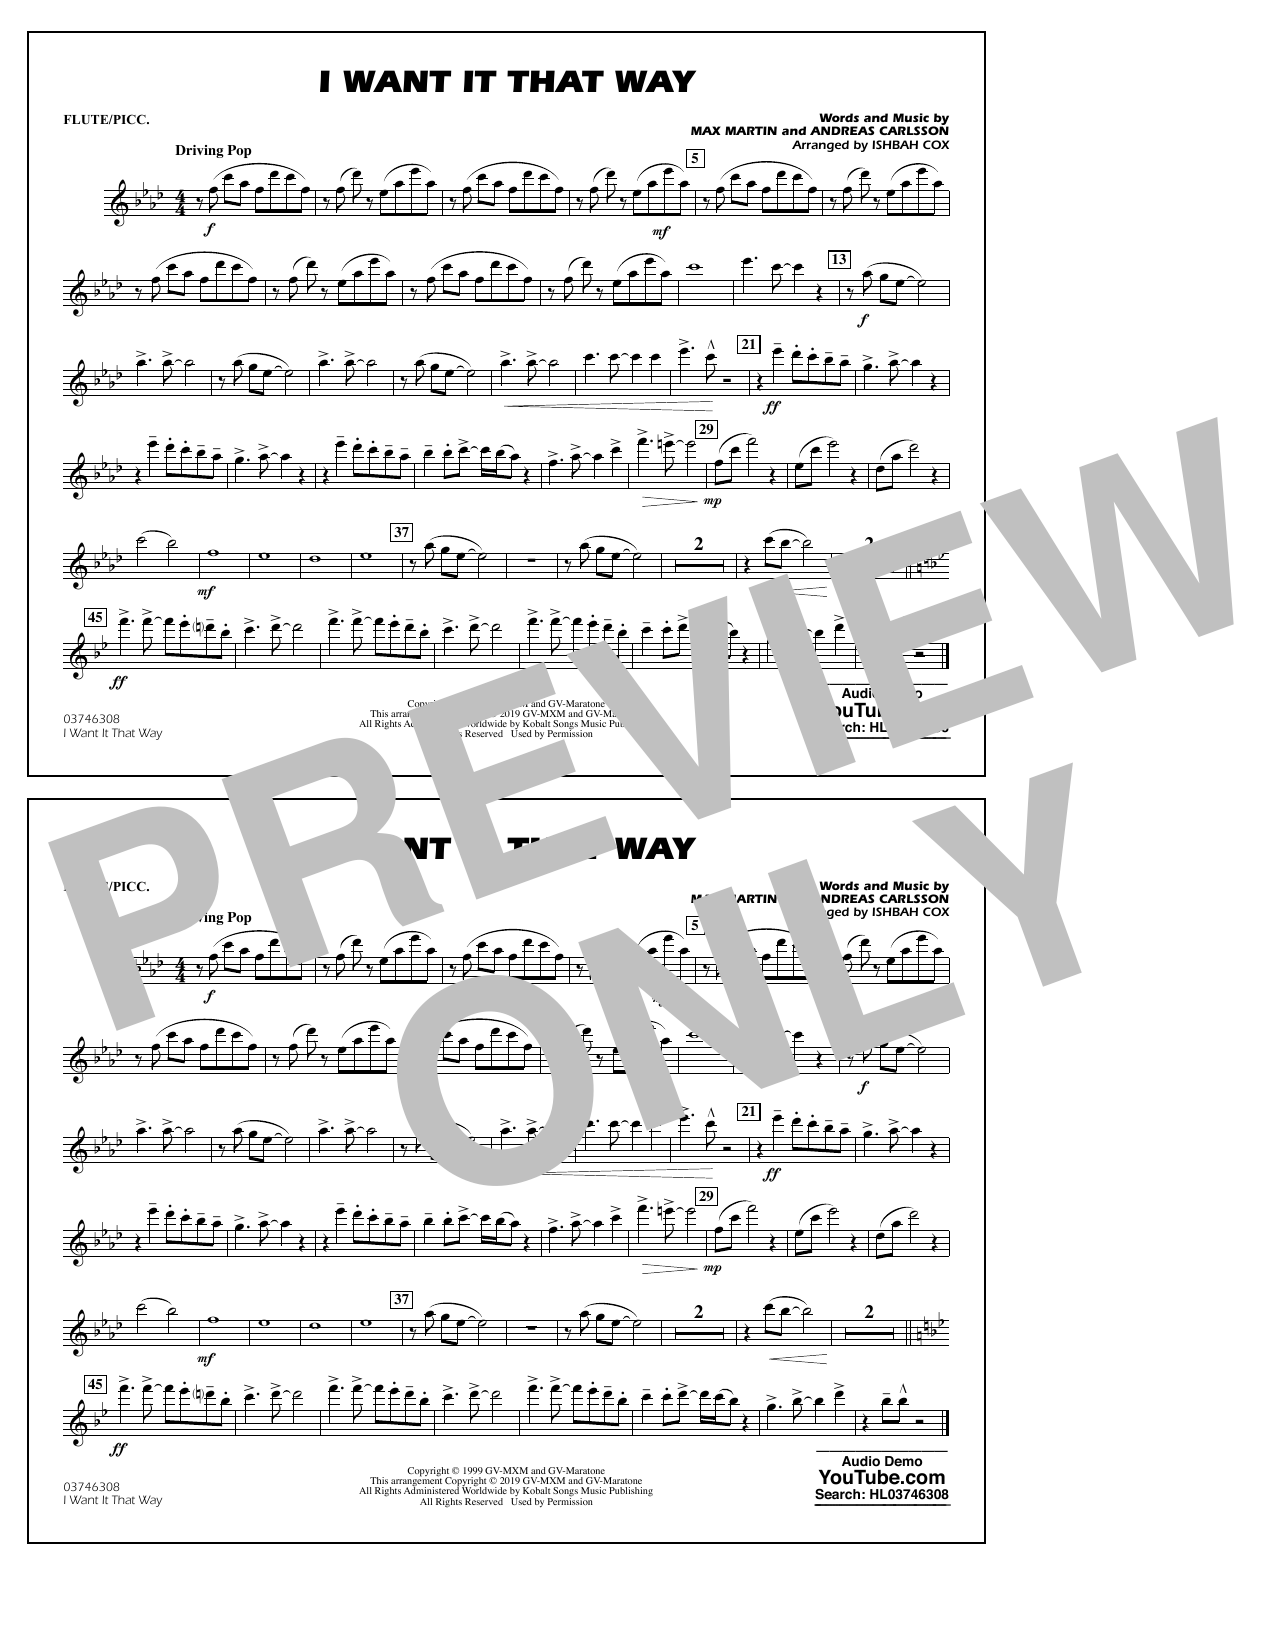 Backstreet Boys I Want It That Way (arr. Ishbah Cox) - Flute/Piccolo sheet music notes and chords